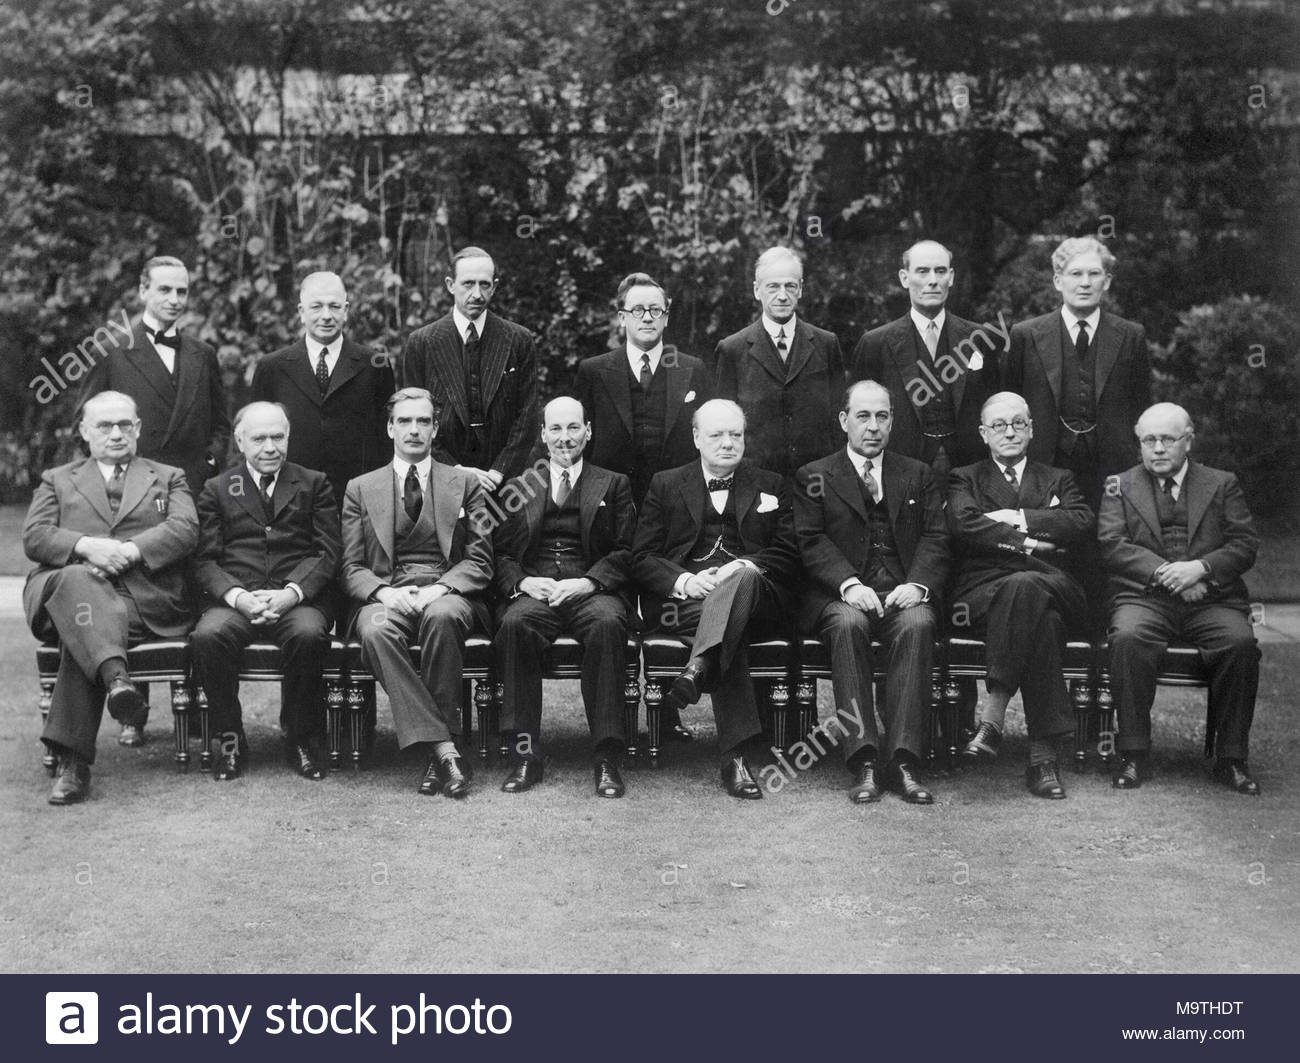 British Political Personalities 1936-1945 The Churchill Coalition Government 11 May 1940 - 23 May 1945: The Churchill Coalition War Cabinet: standing, from left to right, Sir Archibald Sinclair, Mr A V Alexander, Lord Cranborne, Herbert Morrison, Lord Moyne, Captain Margesson and Brendan Bracken. Seated, from left to right, Ernest Bevin, Lord Beaverbrook, Anthony Eden, Clement Attlee, Winston Churchill, Sir John Anderson, Arthur Greenwood and Sir Kingsley Wood. - Stock Image